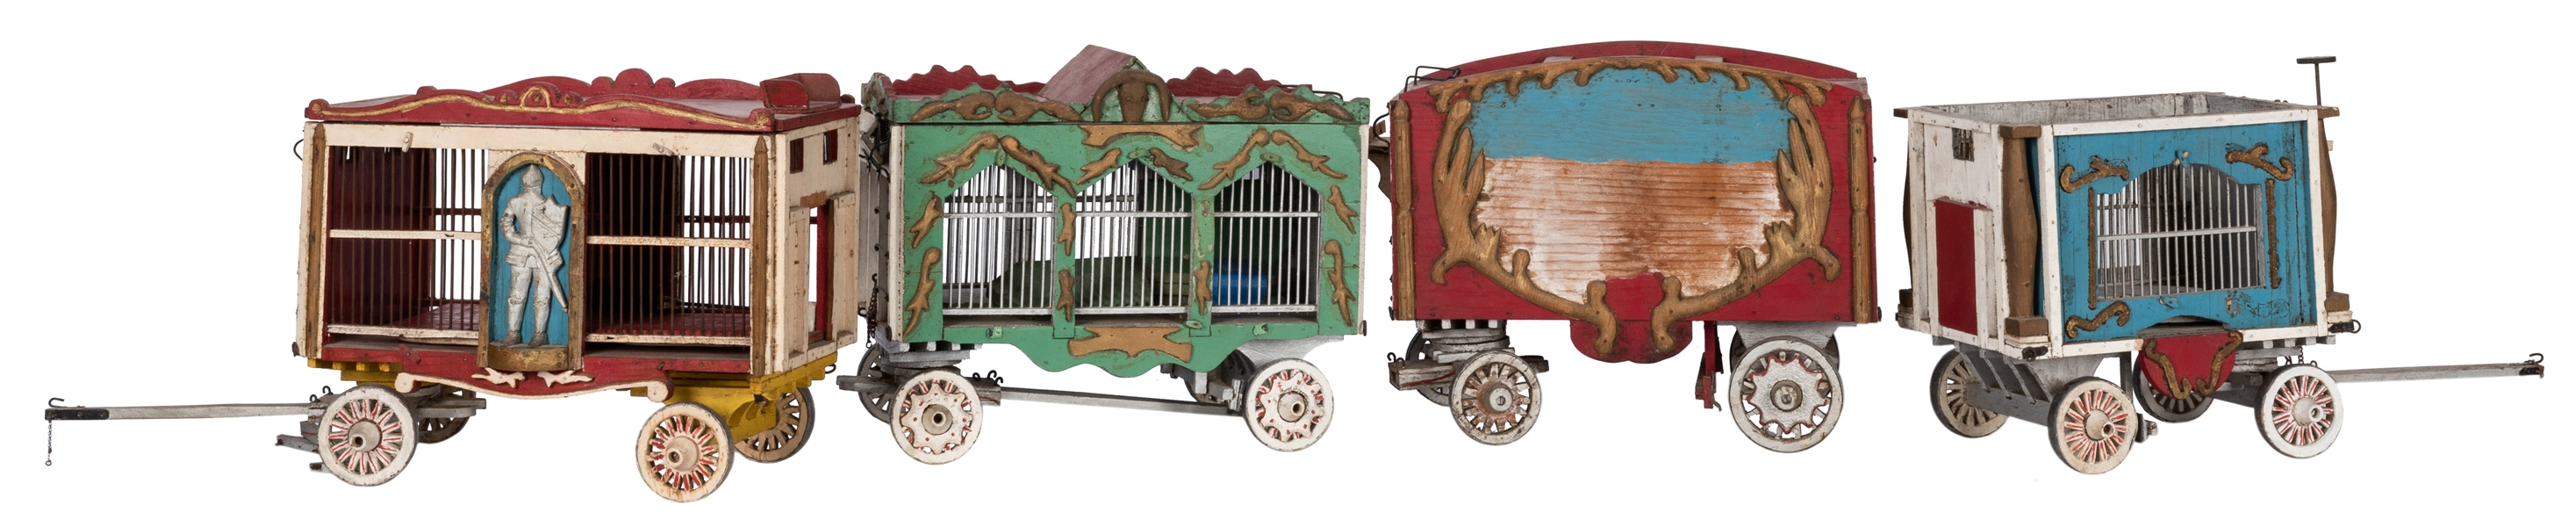 Group of Four Wooden Model Circus Wagons.